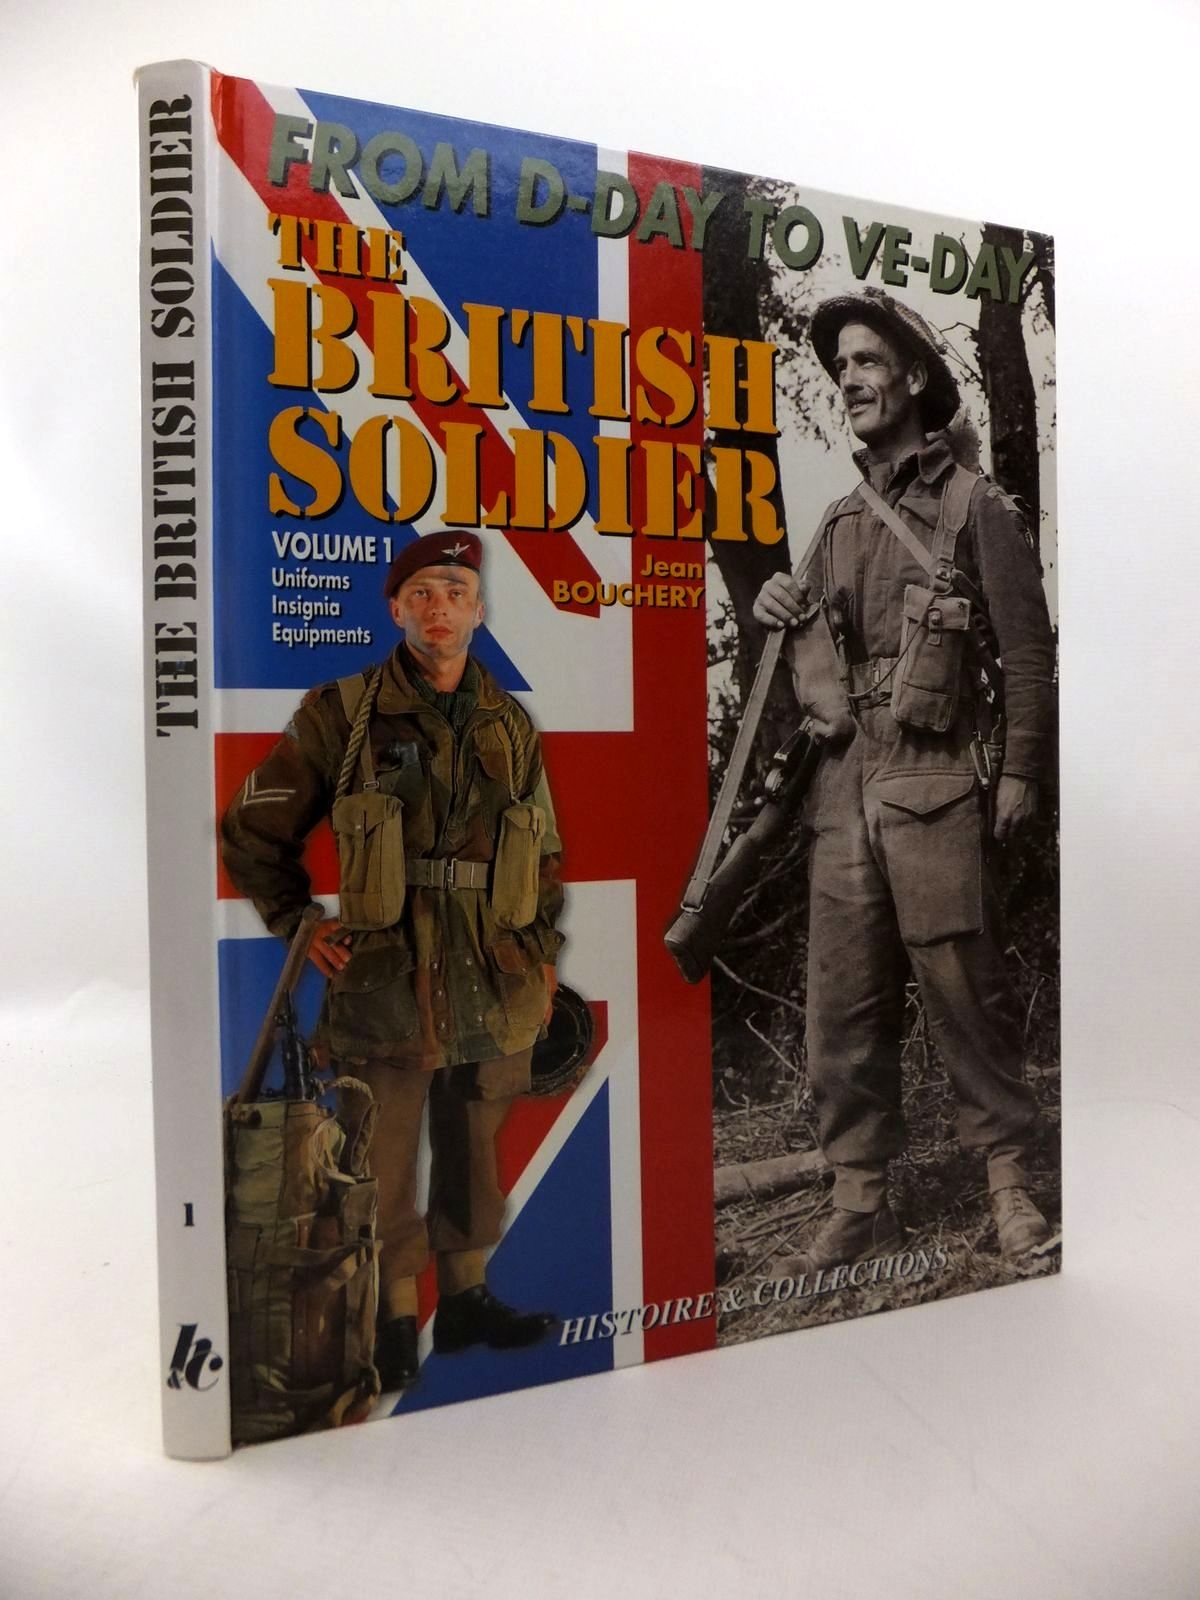 Photo of THE BRITISH TOMMY IN NORTH WEST EUROPE 1944-1945 VOLUME 1 written by Bouchery, Jean published by Histoire & Collections (STOCK CODE: 1814030)  for sale by Stella & Rose's Books